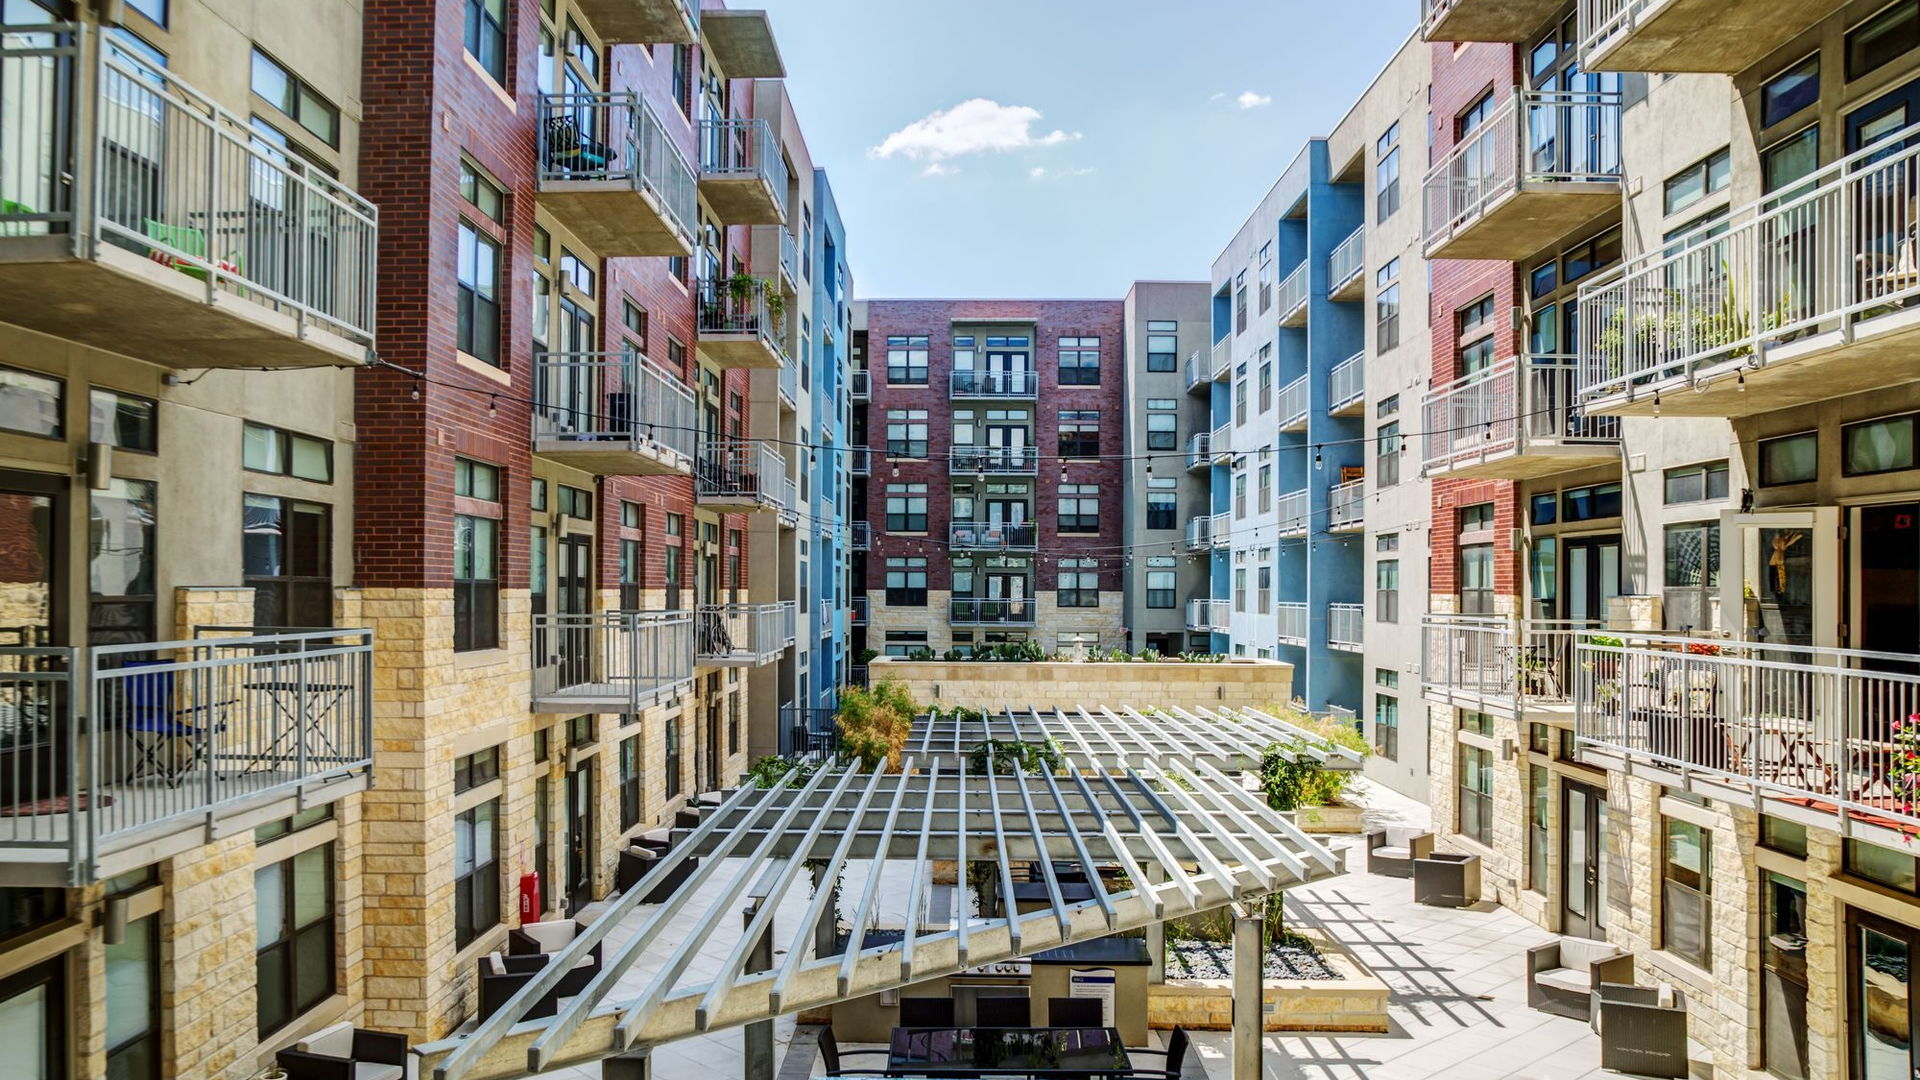 1 Bedroom Apartments Austin Tx Under 500 - Search your ...